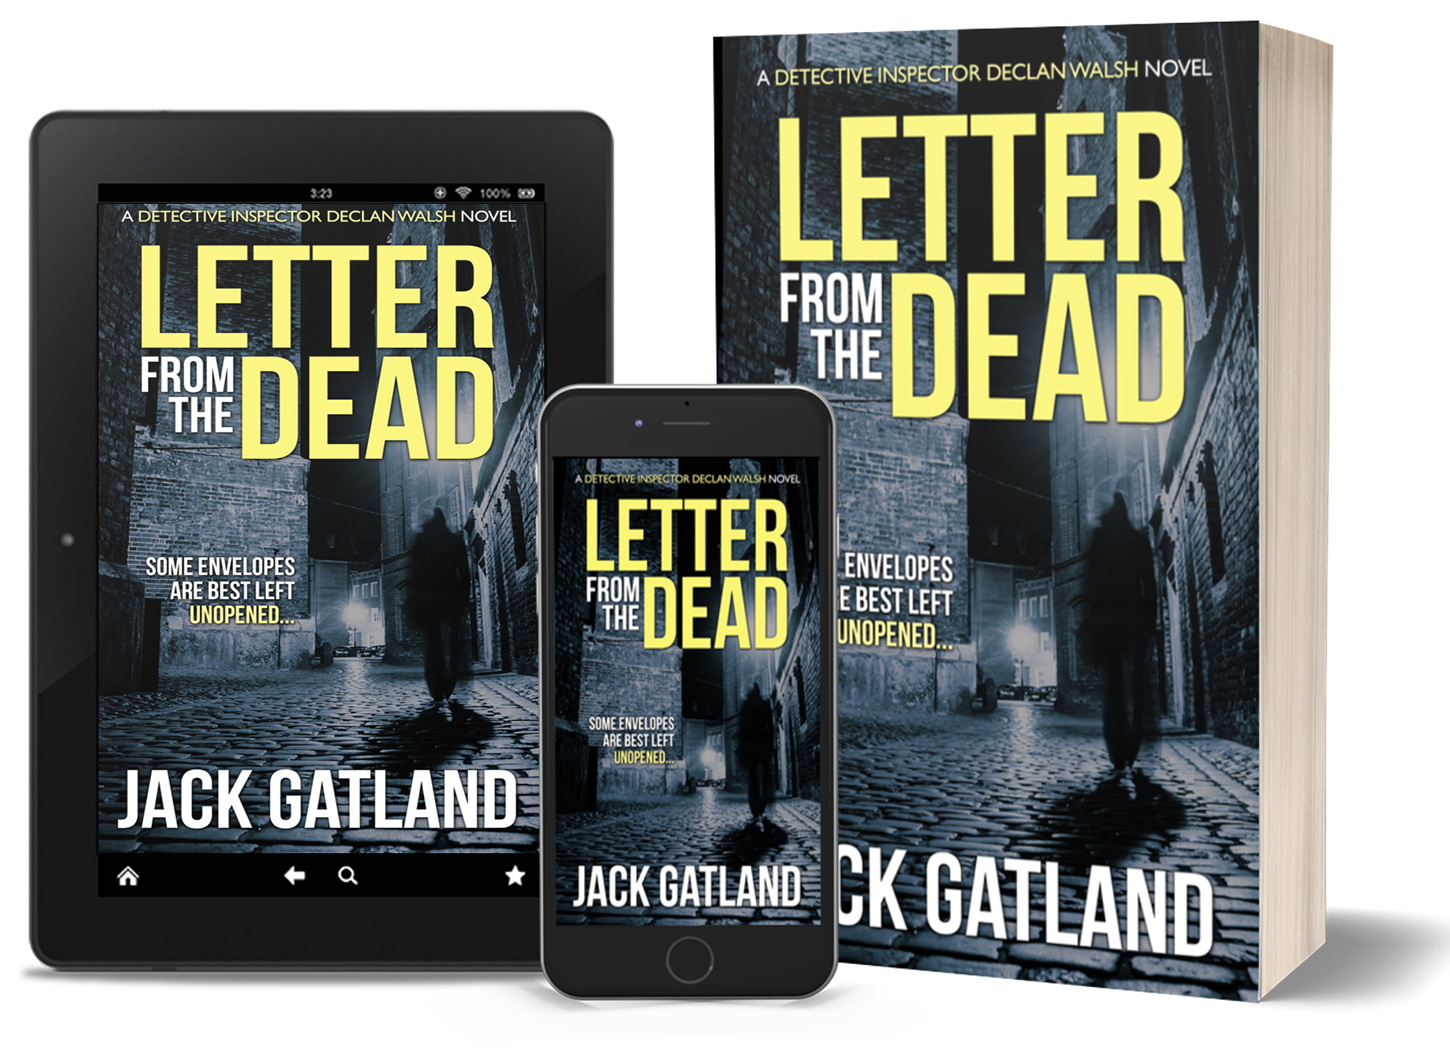 LETTER FROM THE DEAD: available now